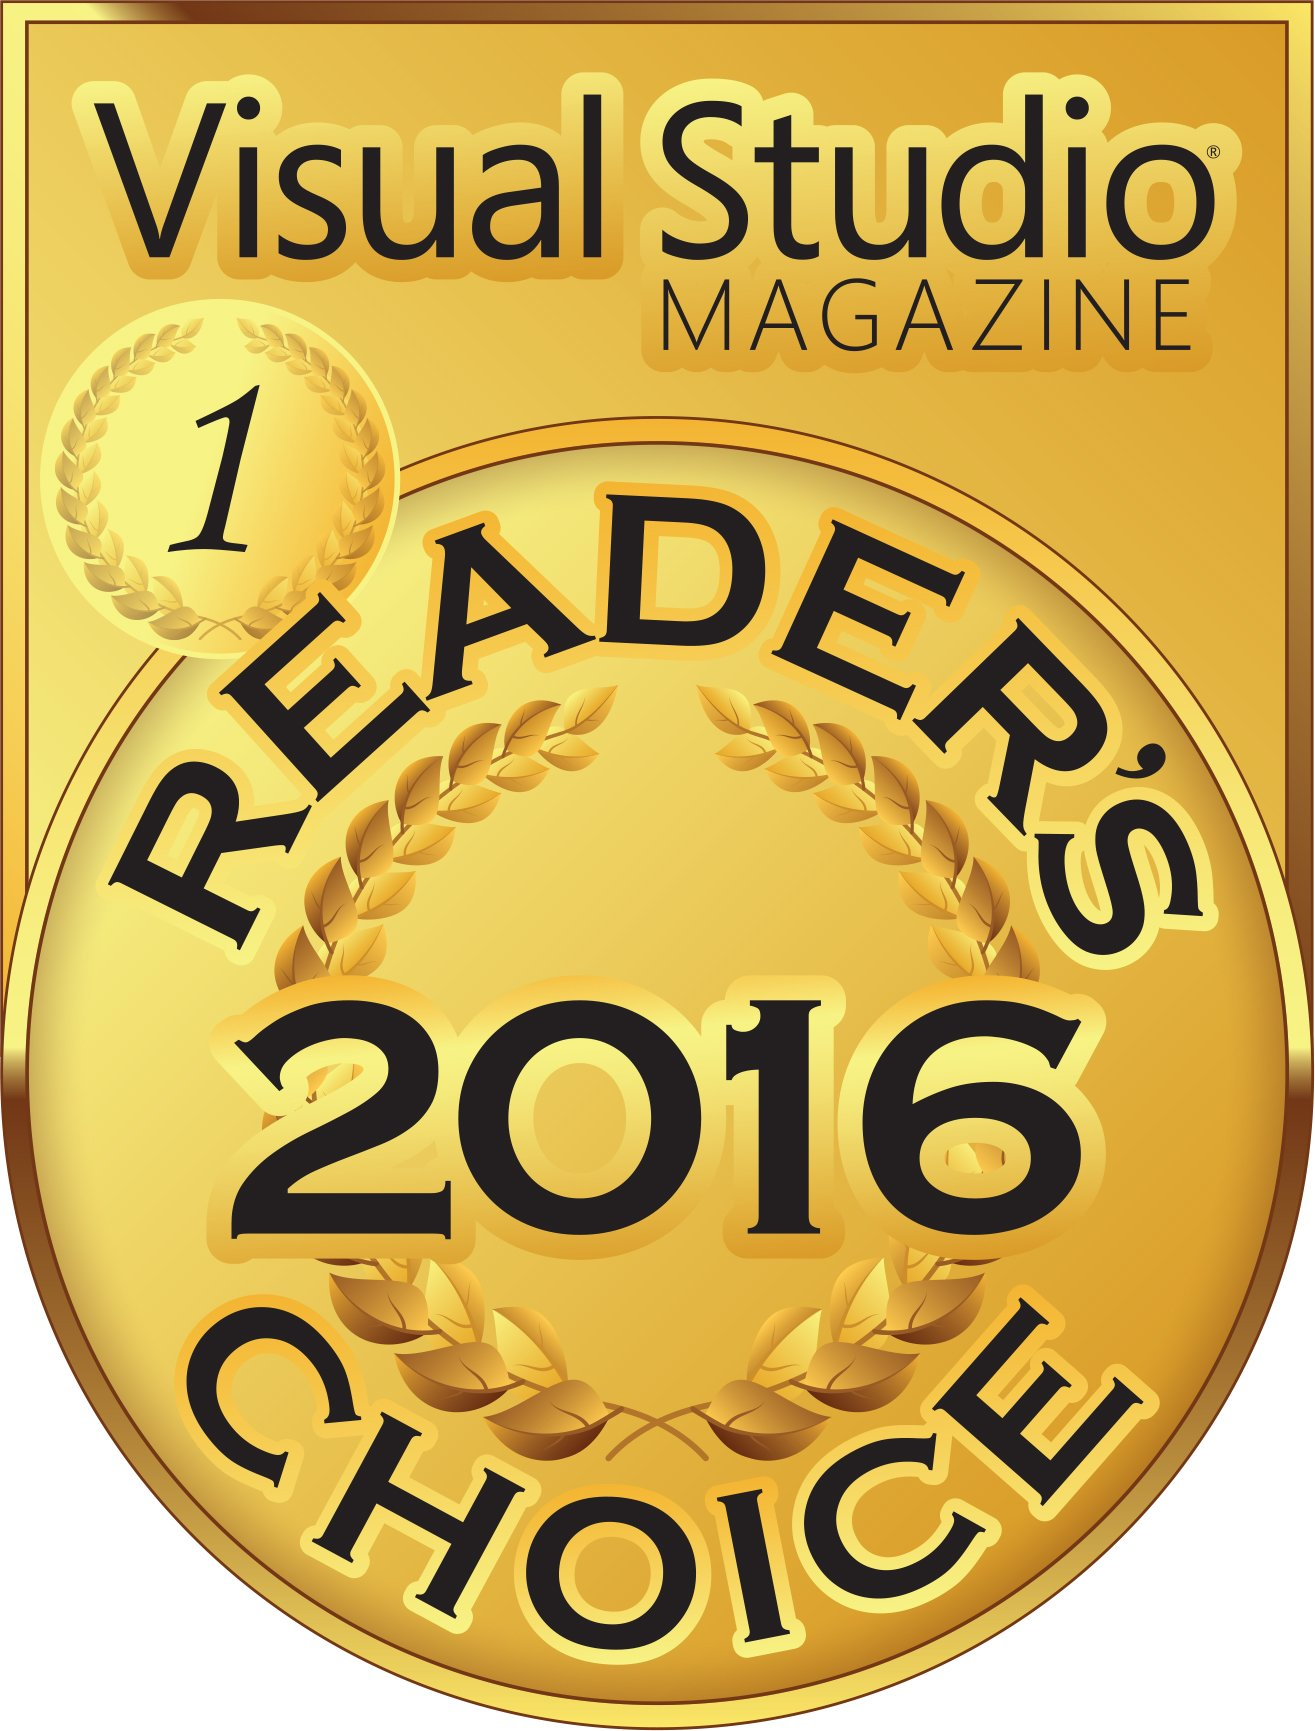 Visual Studio reader's choice award